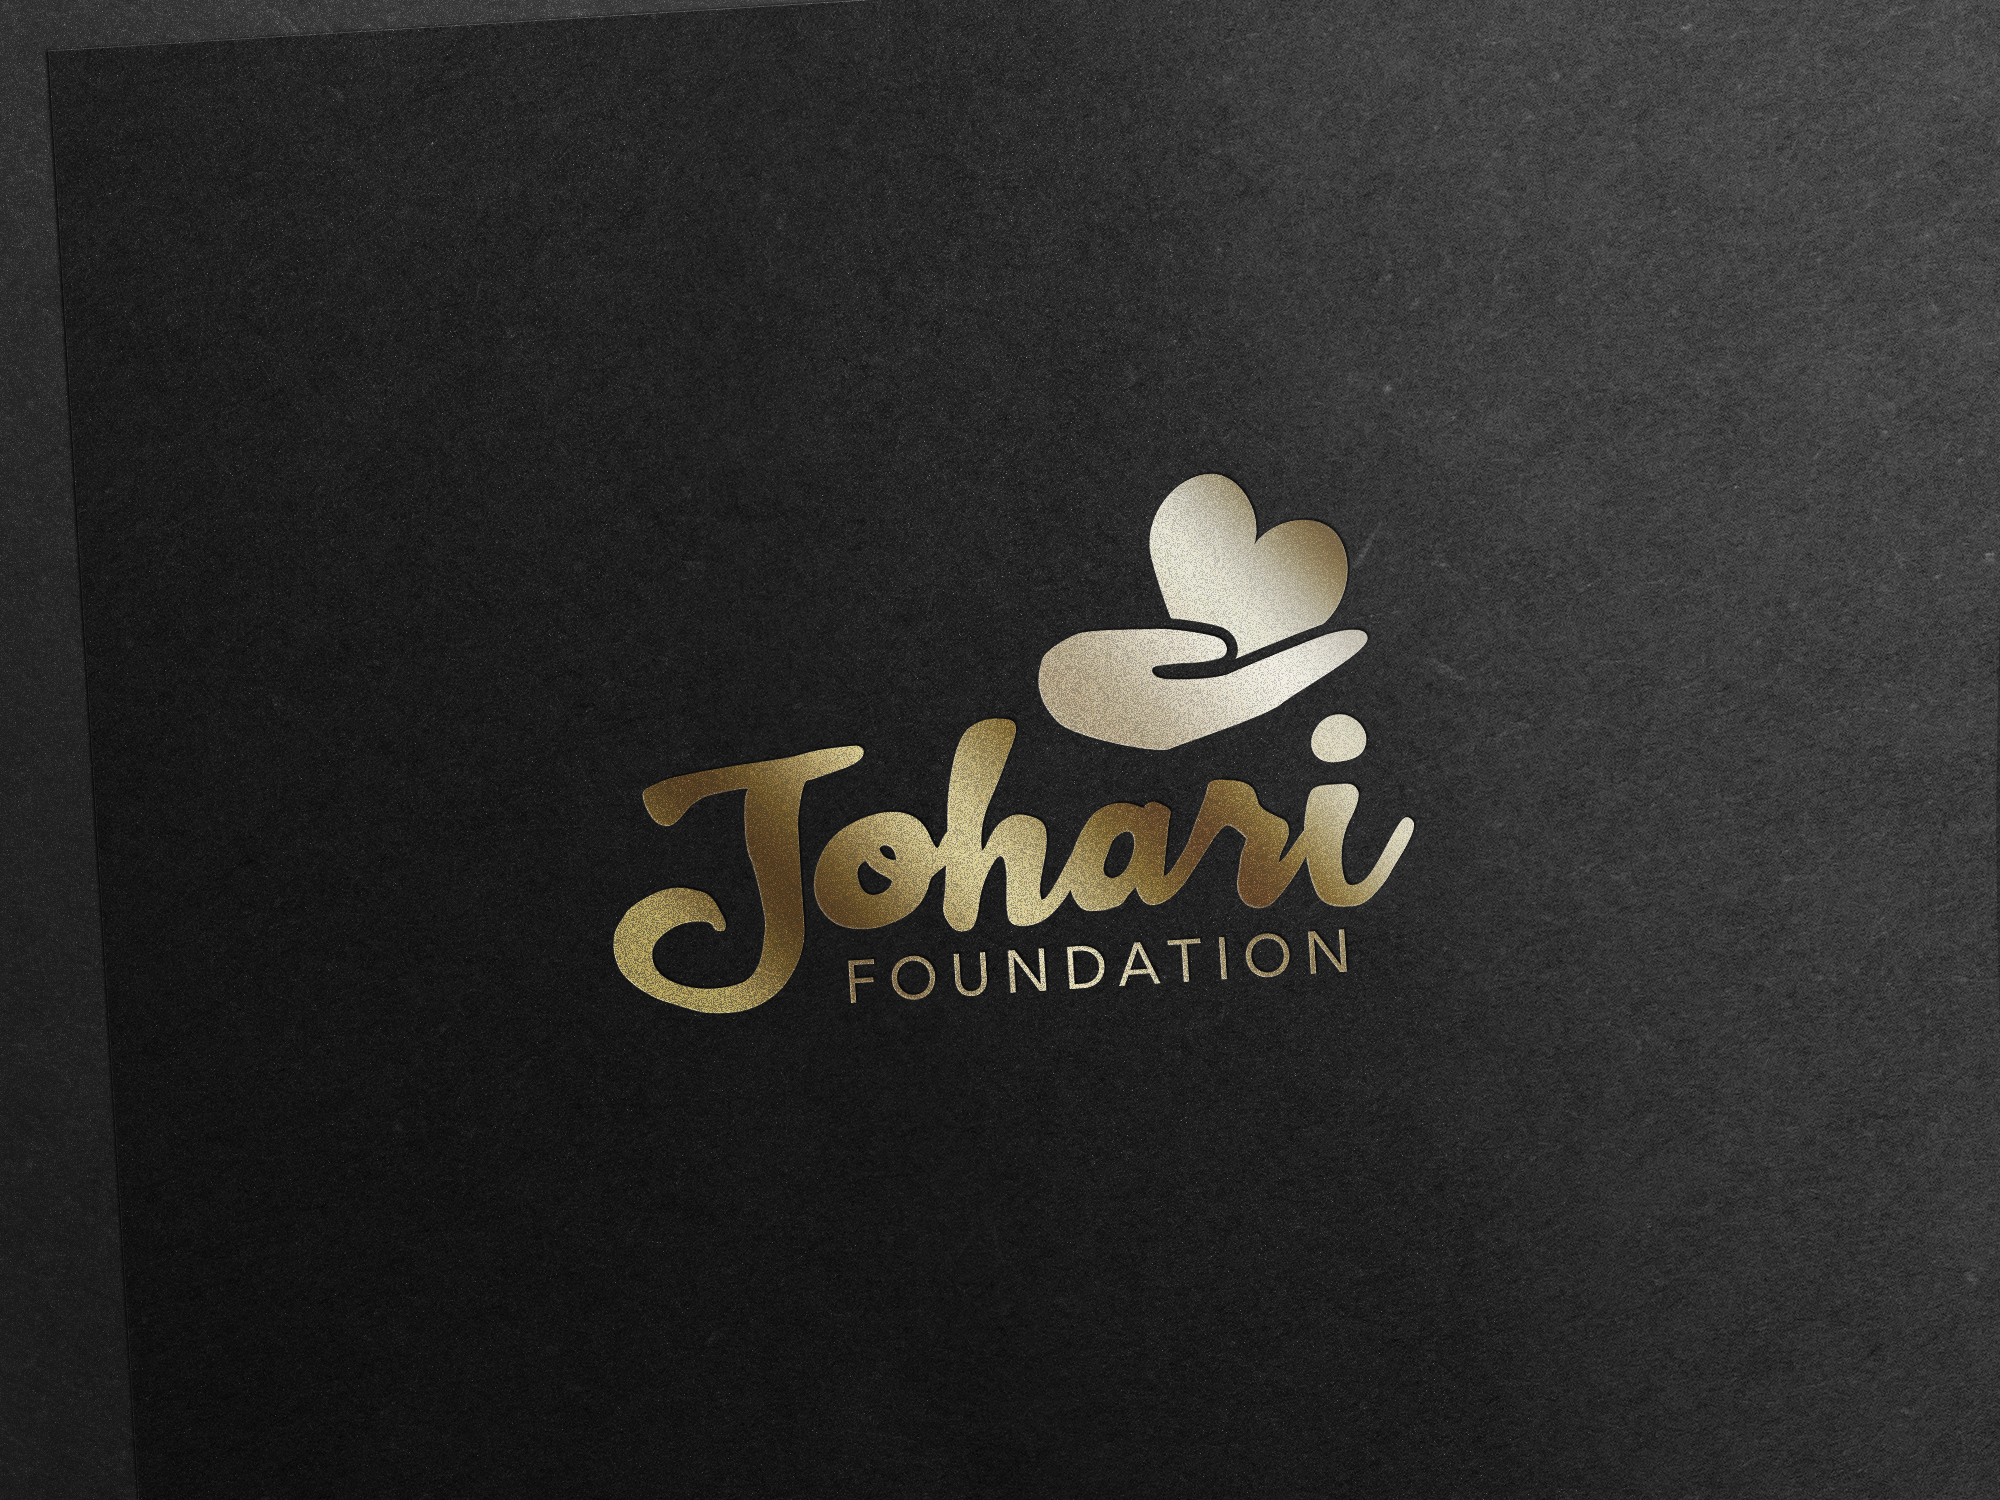 johari-foundation-gold-color